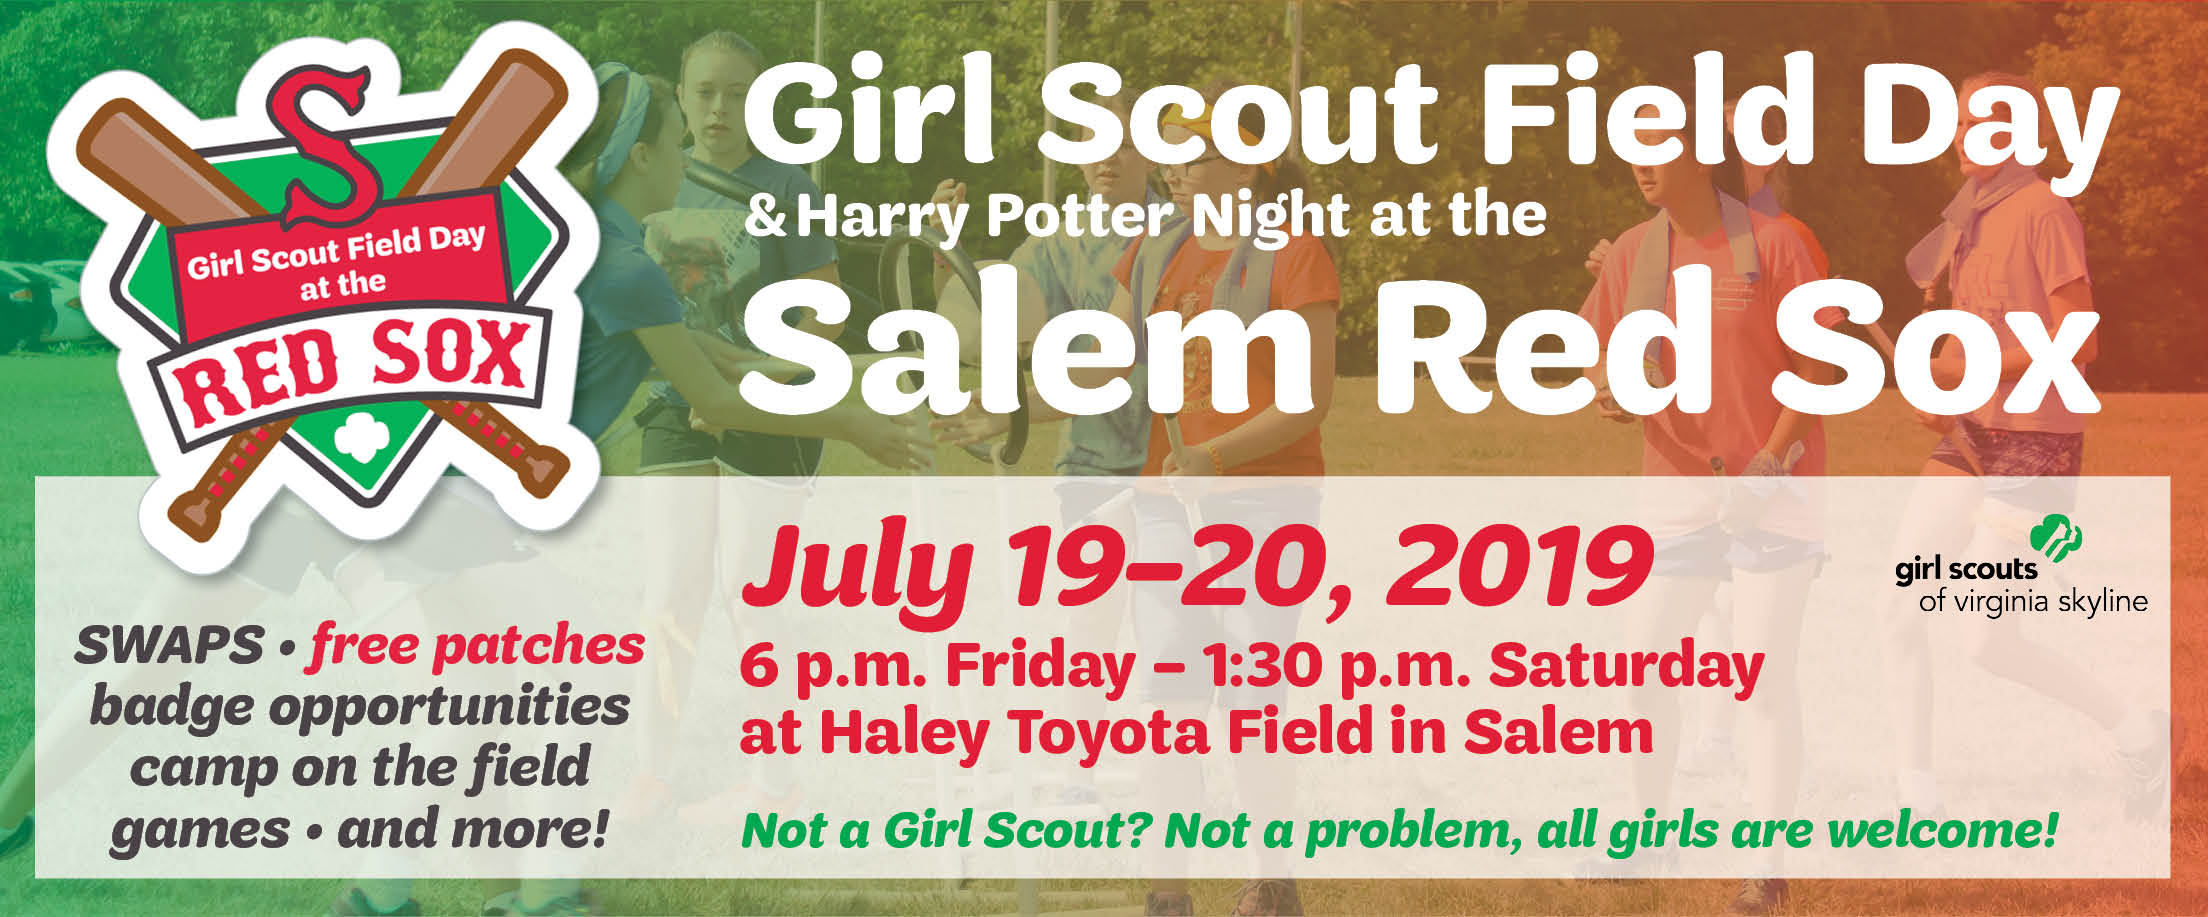 Girl Scout Field Day At The Salem Red Sox